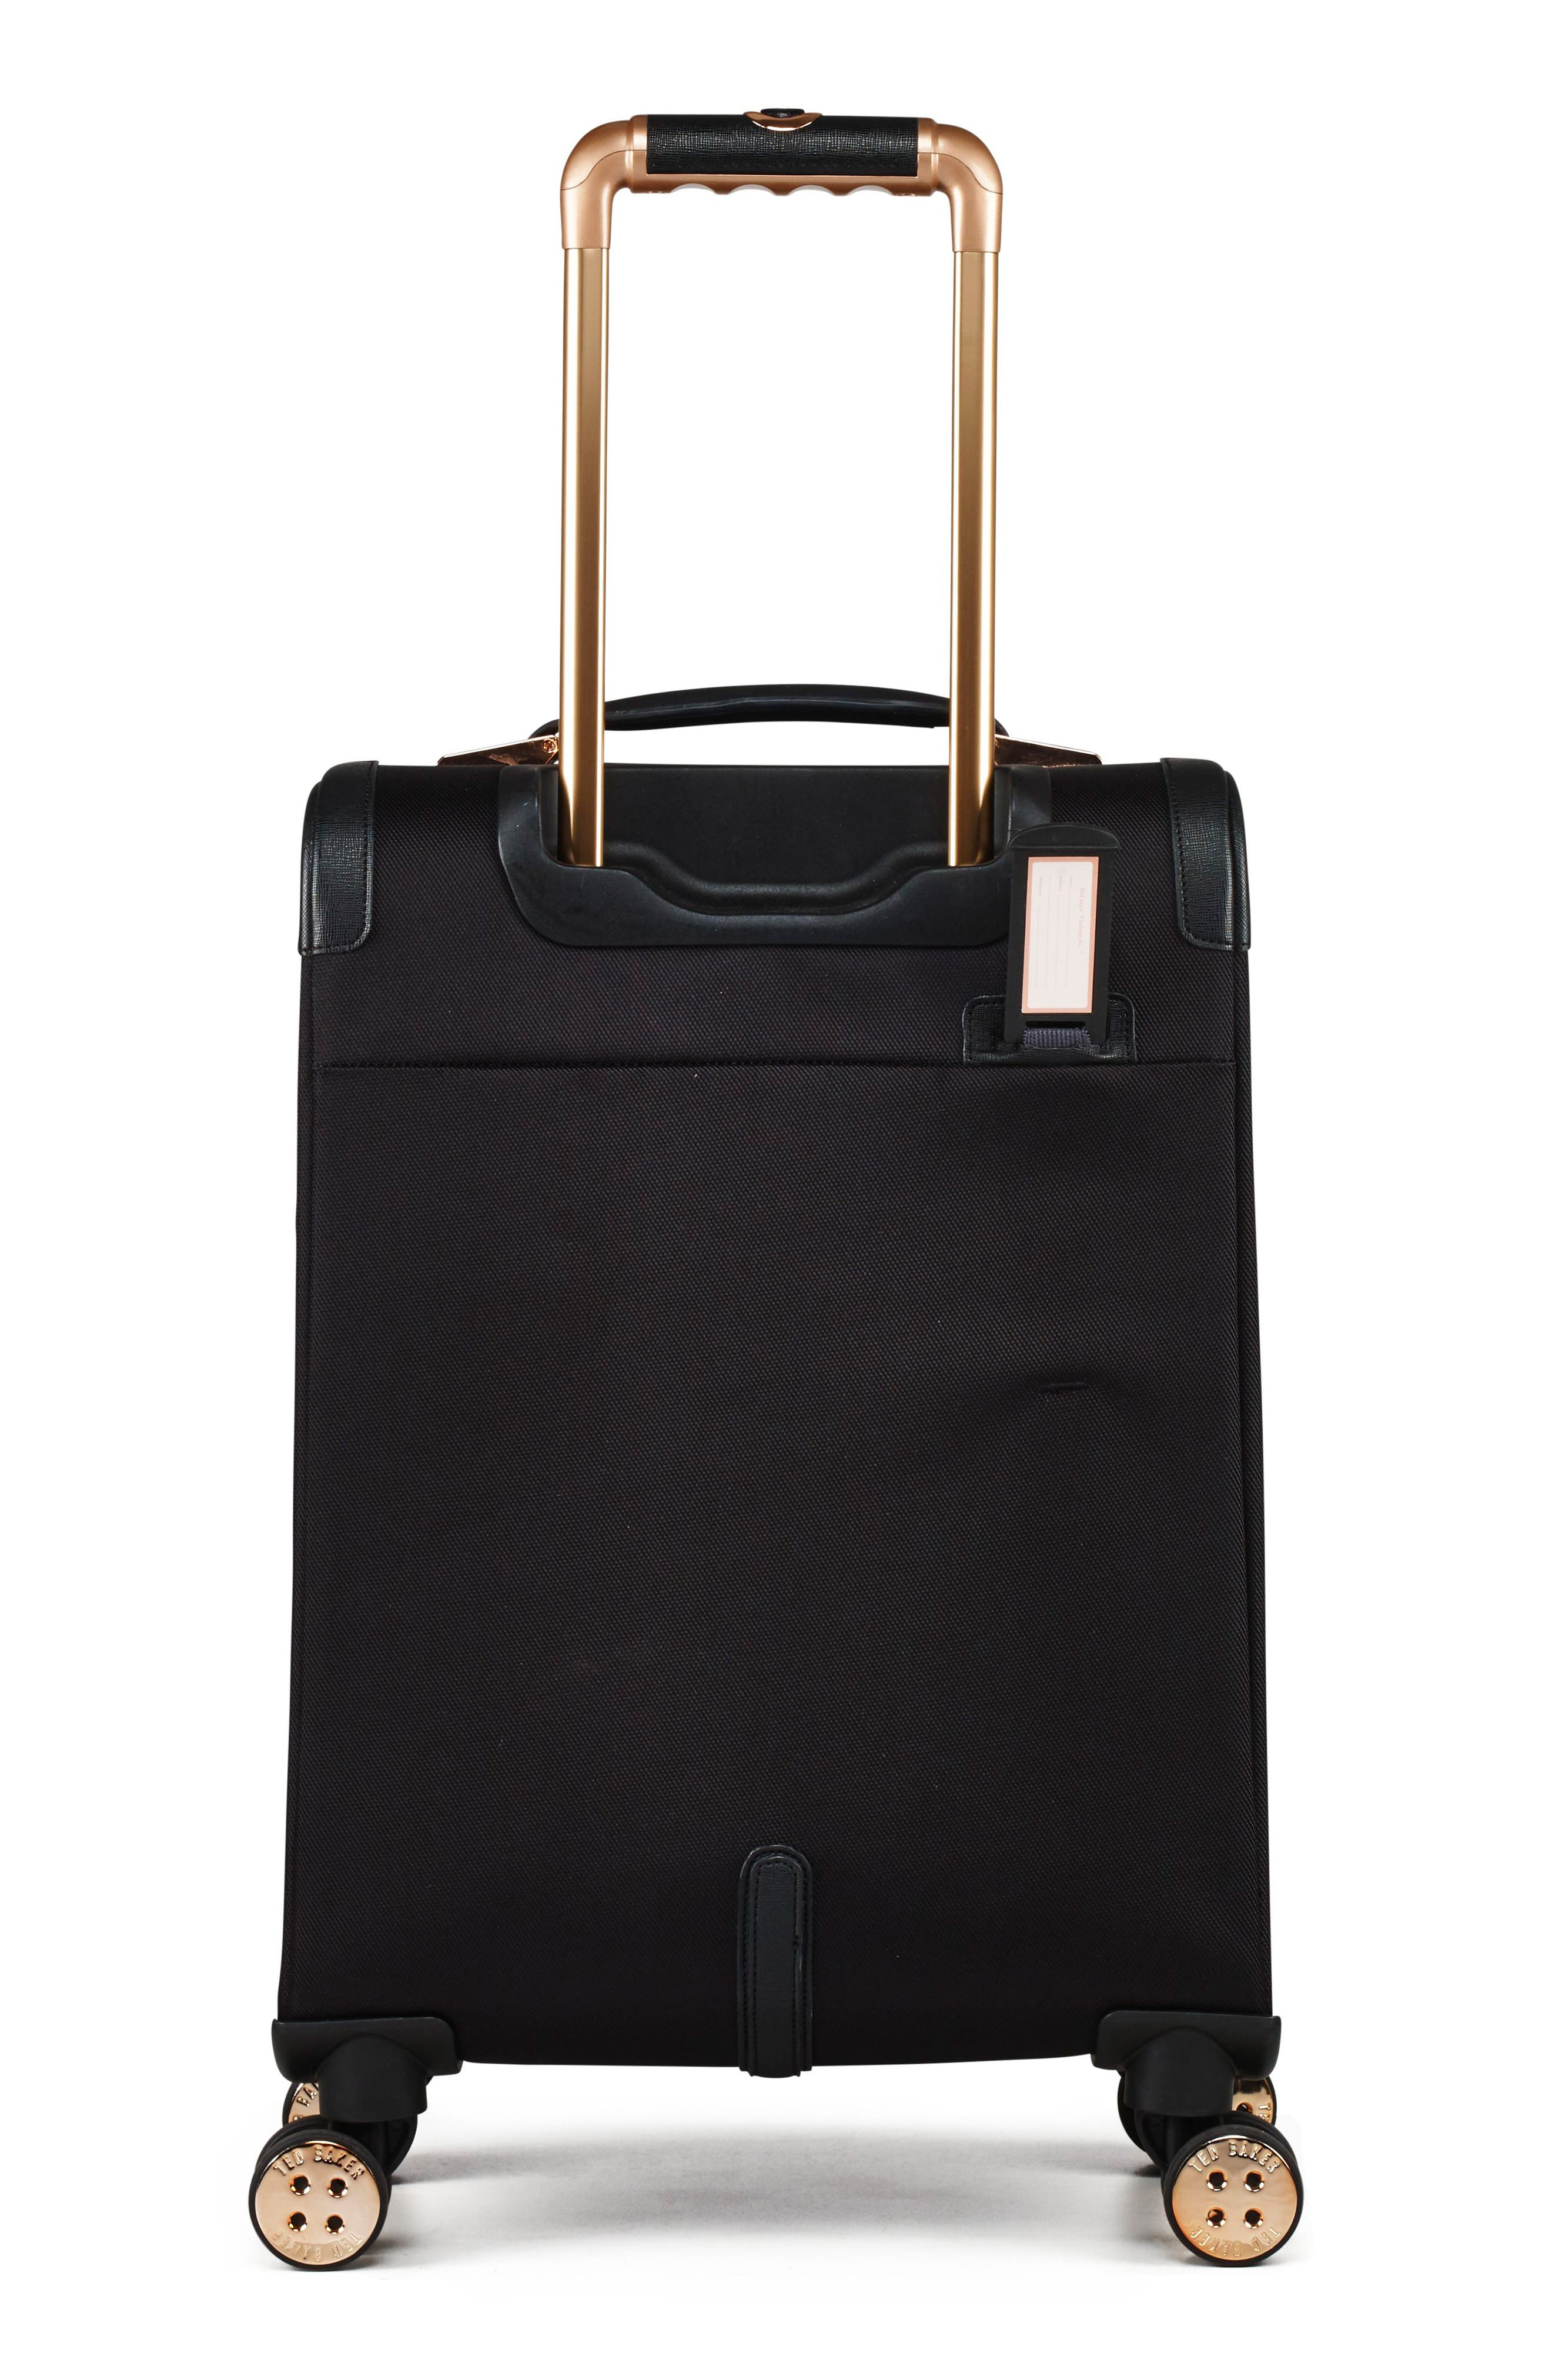 22-Inch Trolley Packing Case,                             Alternate thumbnail 2, color,                             BLACK